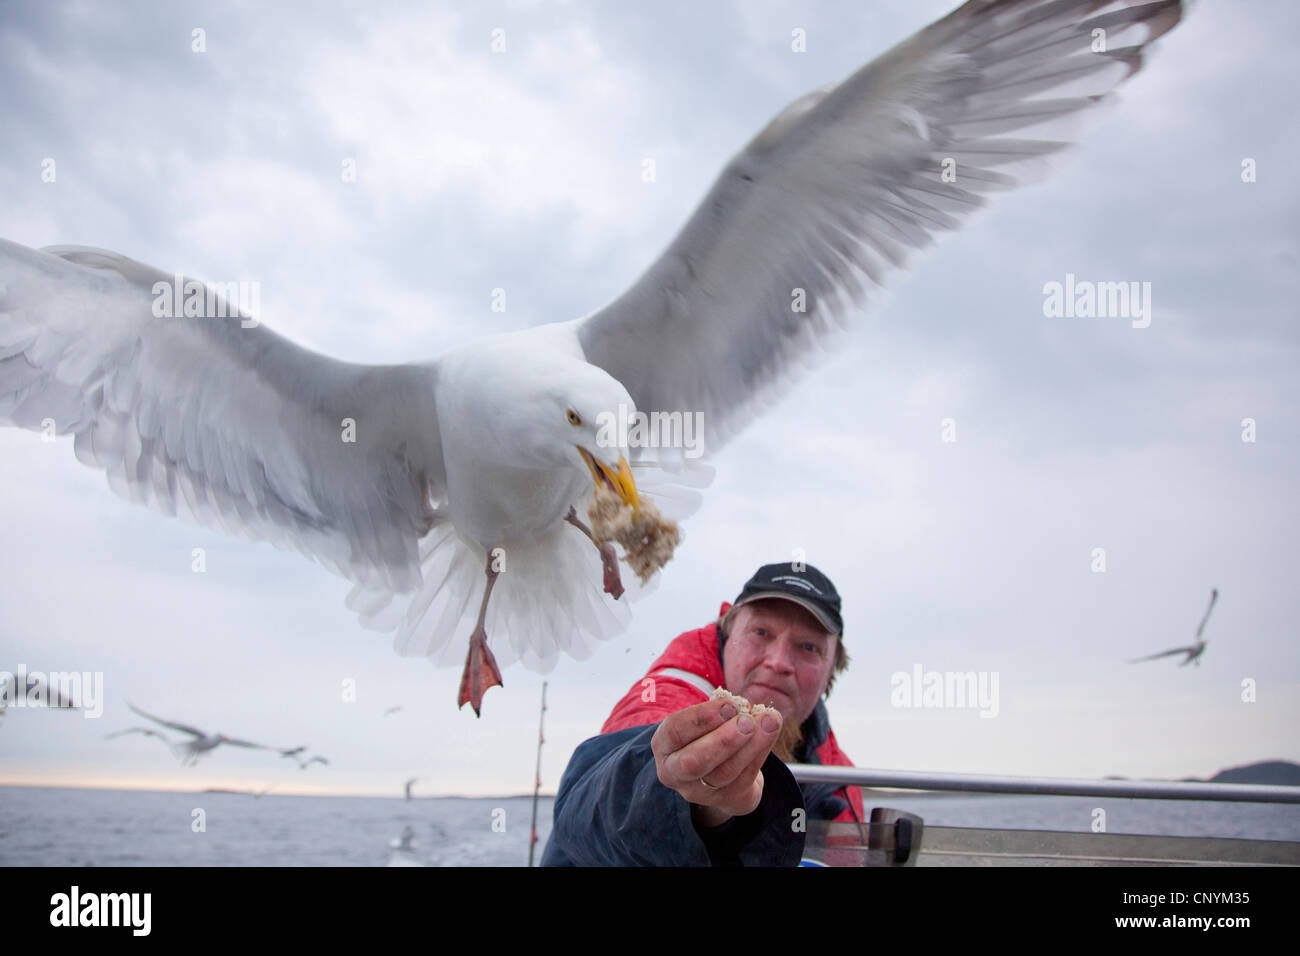 herring gull (Larus argentatus), feeding in flight out of a fisherman's hand, Norway, Nord-Trondelag, Flatanger - Stock Image